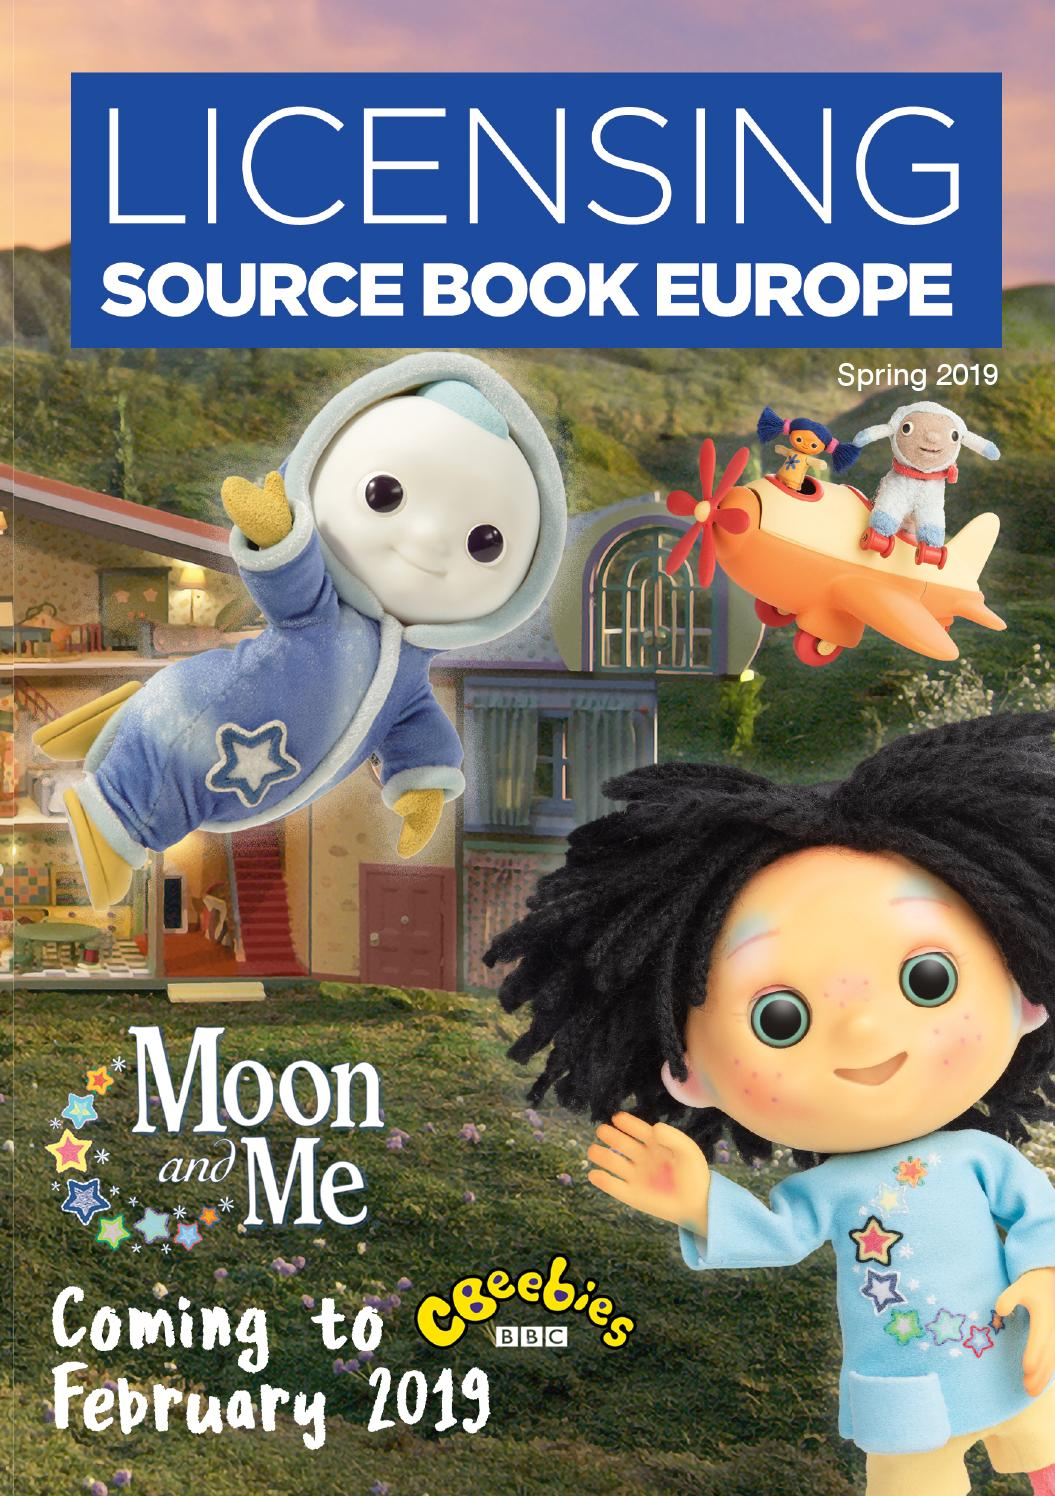 72410cd3642c Licensing Source Book Europe - Spring 2019 by Max Publishing - issuu